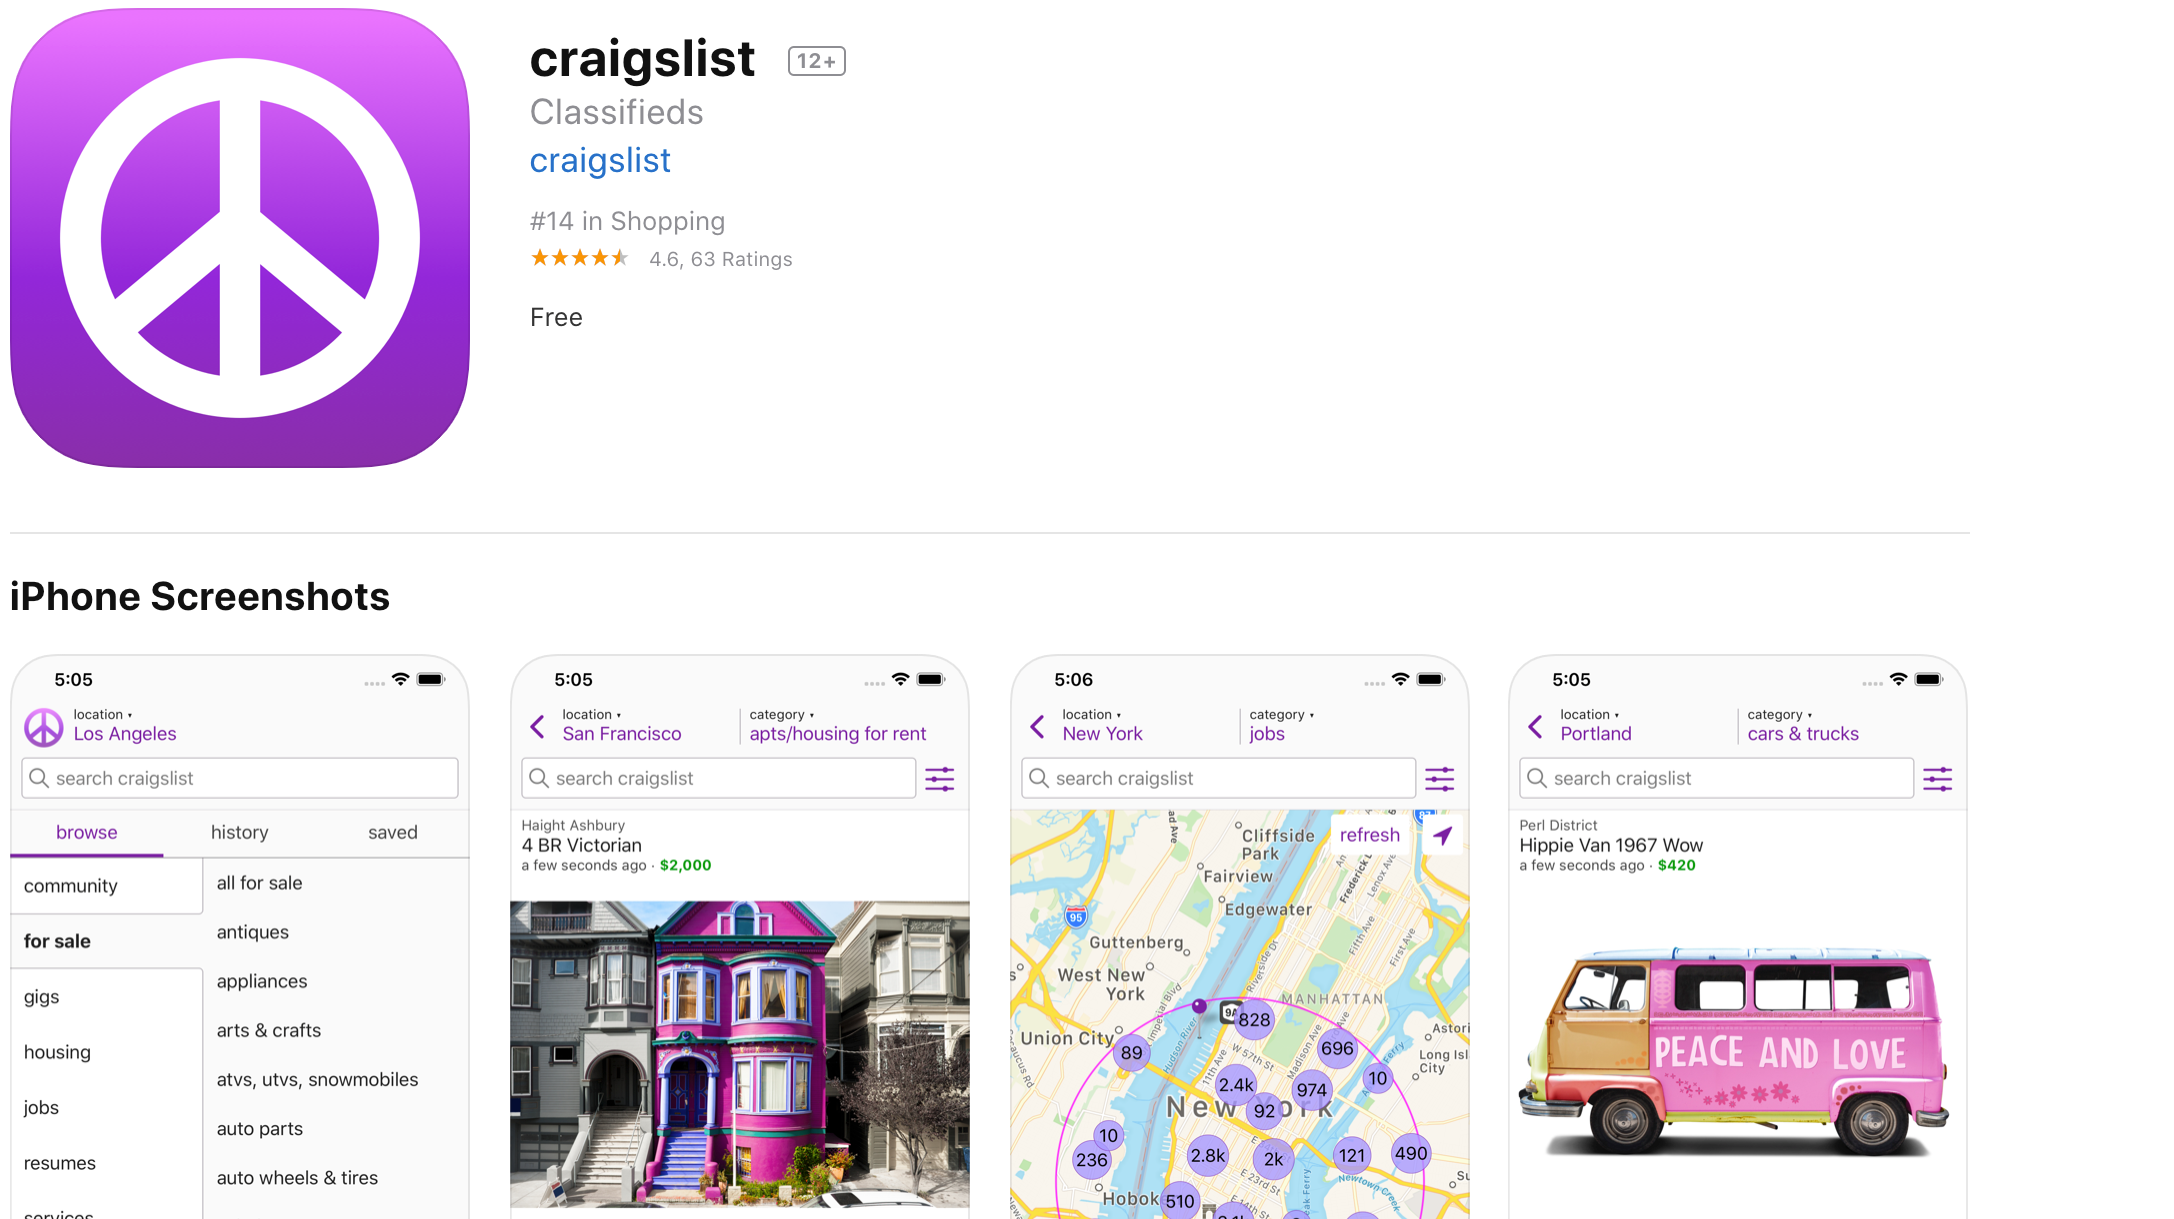 Craigslist Finally Gets An Official App